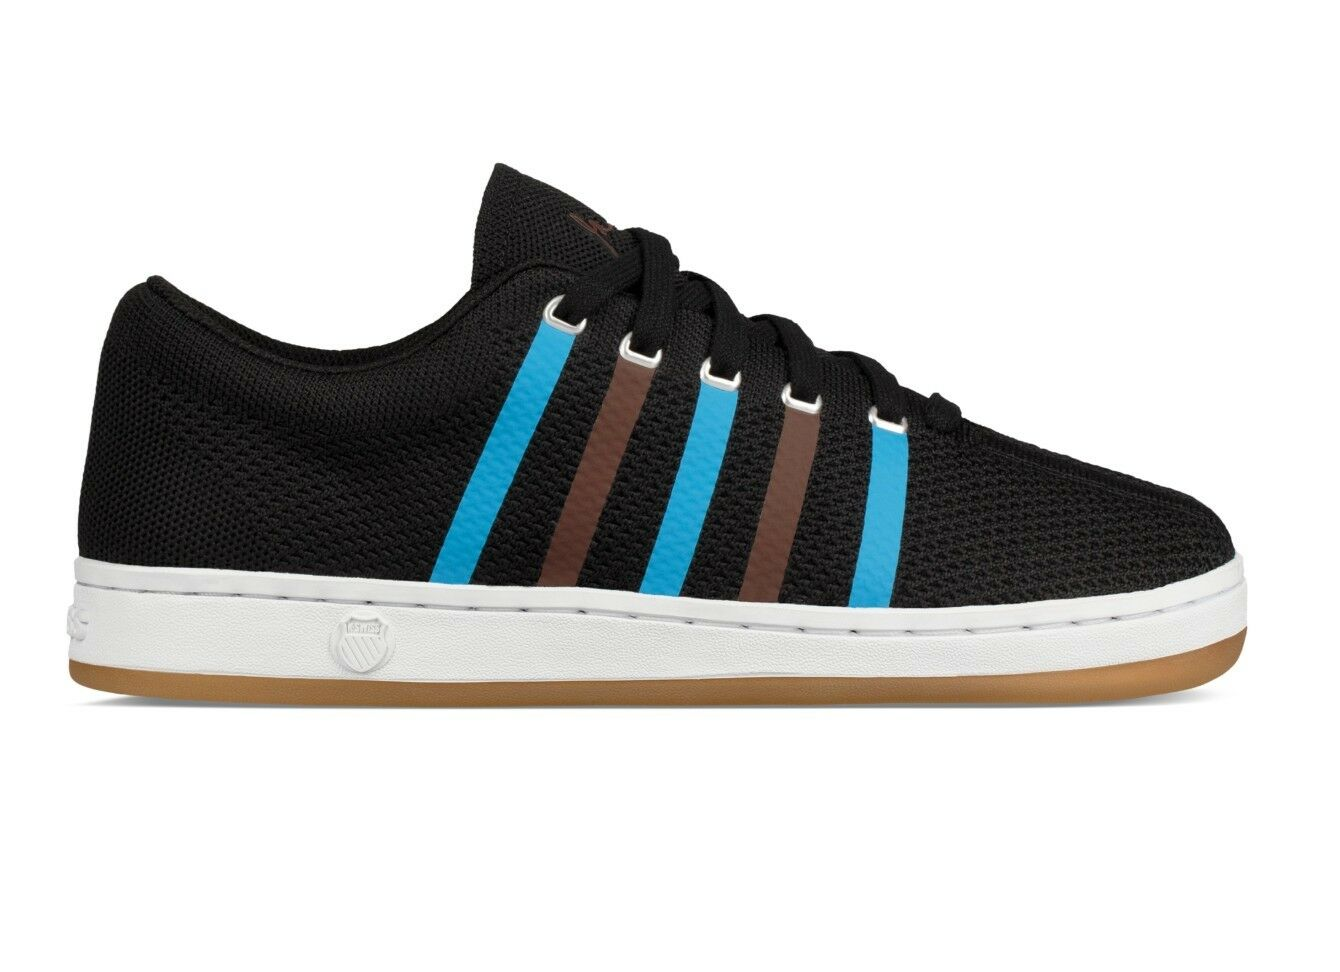 K-SWISS GARY VEE 003 DARK CLOUDS  LIMITED EDITION  Size 9.5